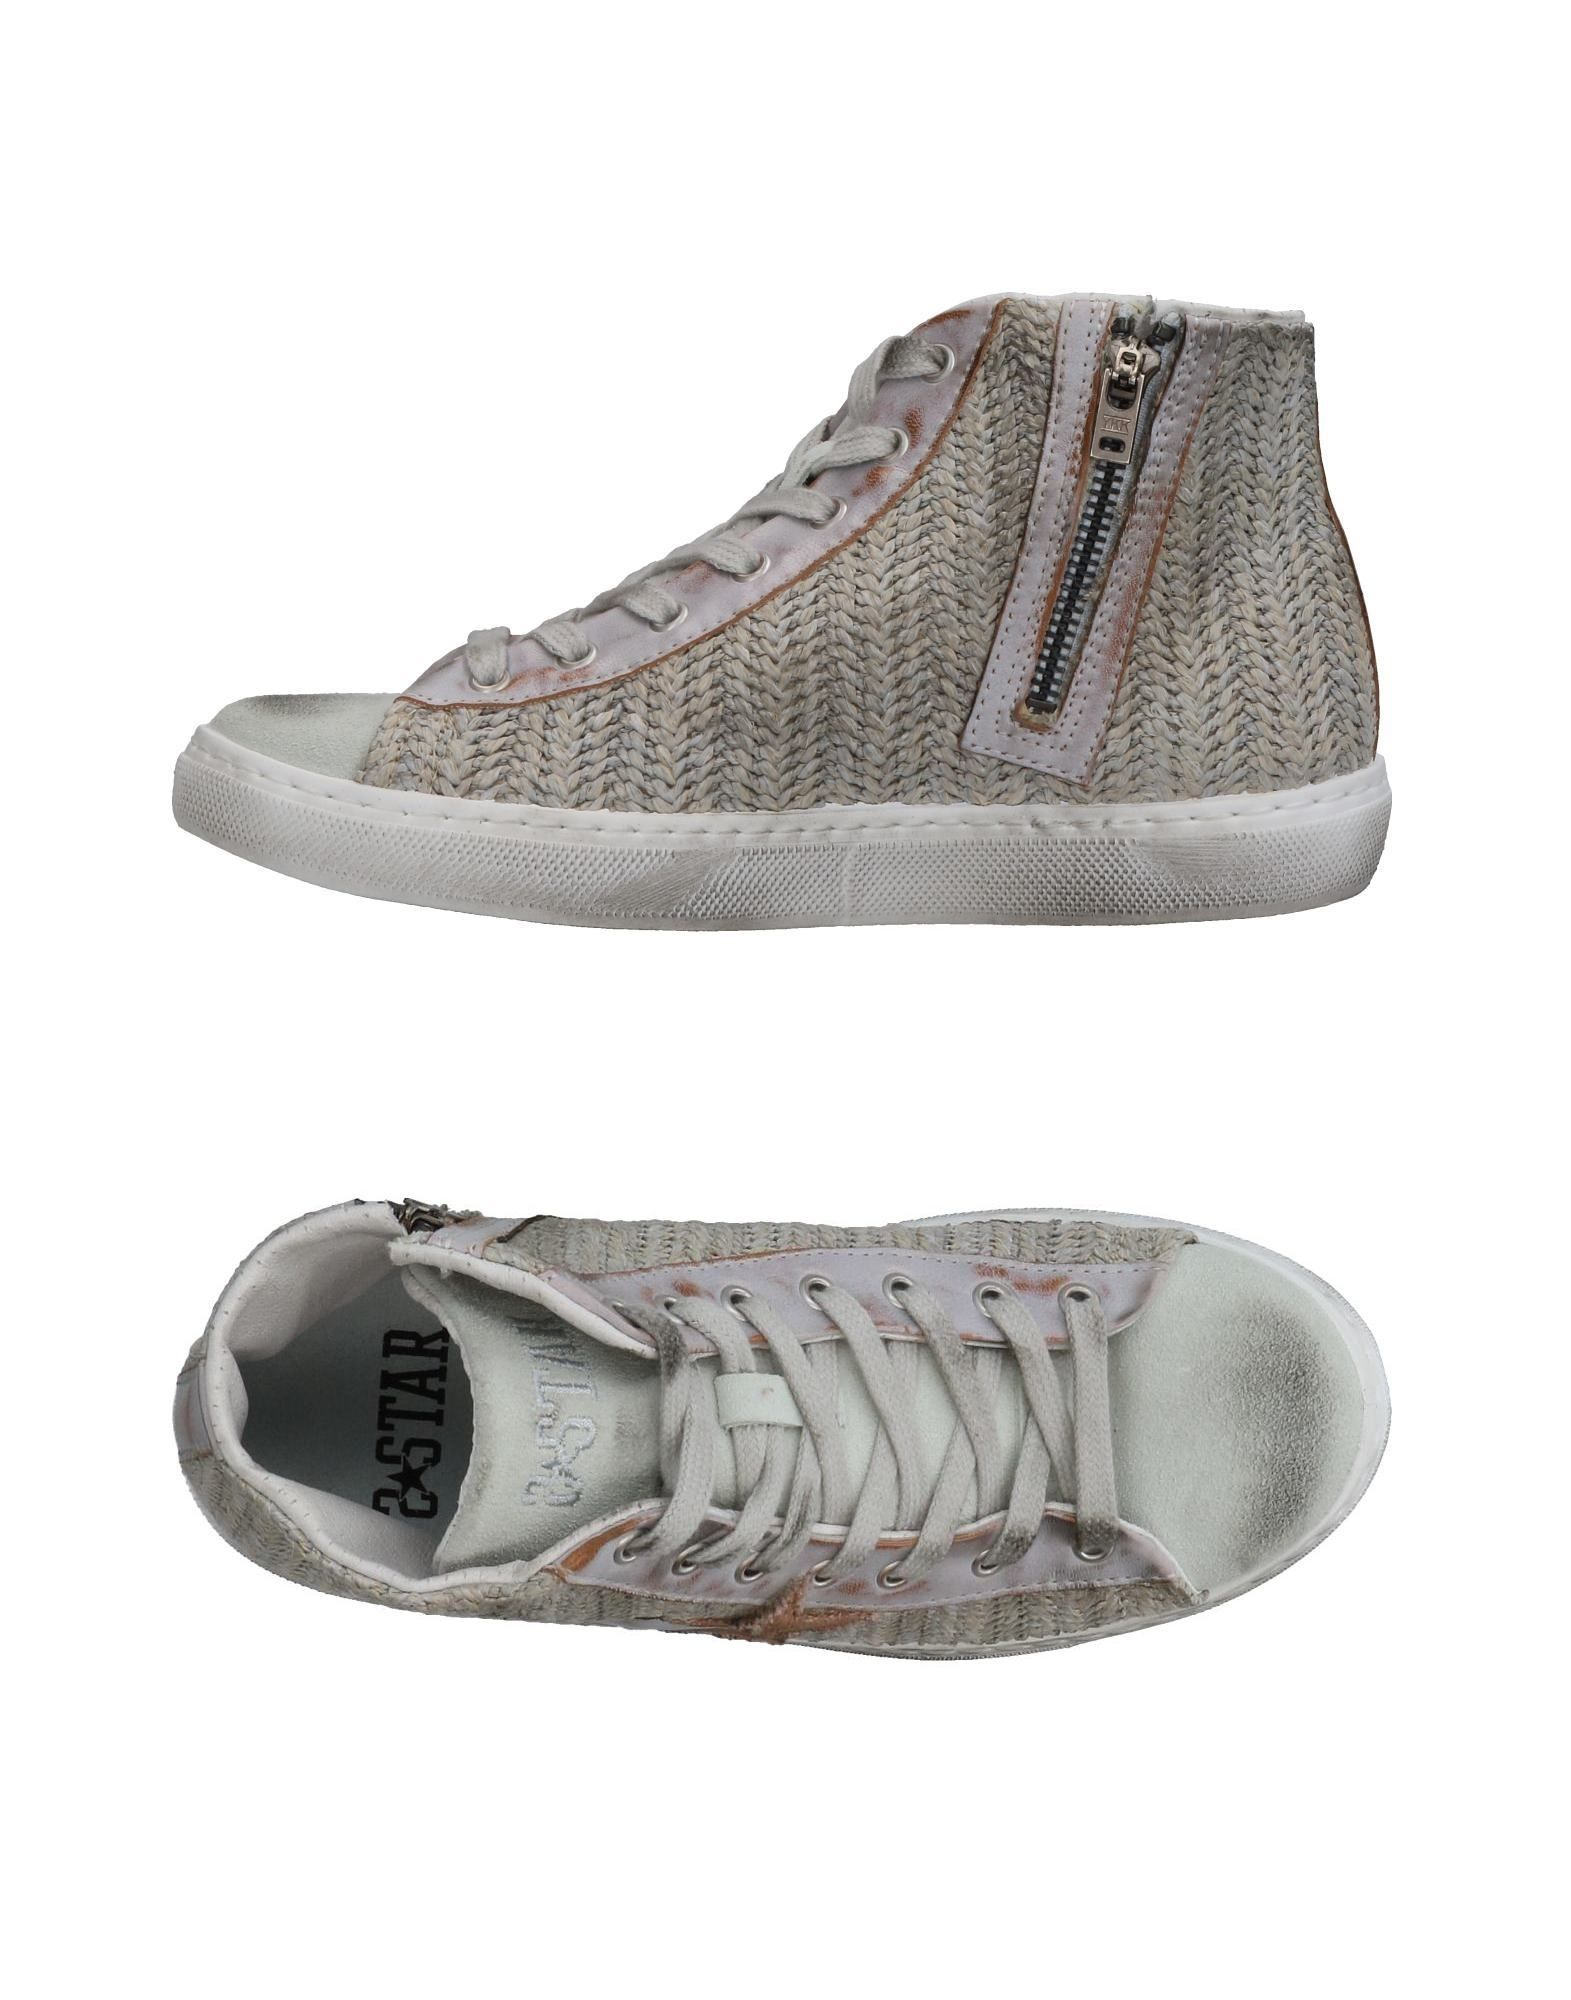 Baskets 2Star Femme - Baskets 2Star Gris clair Super rabais